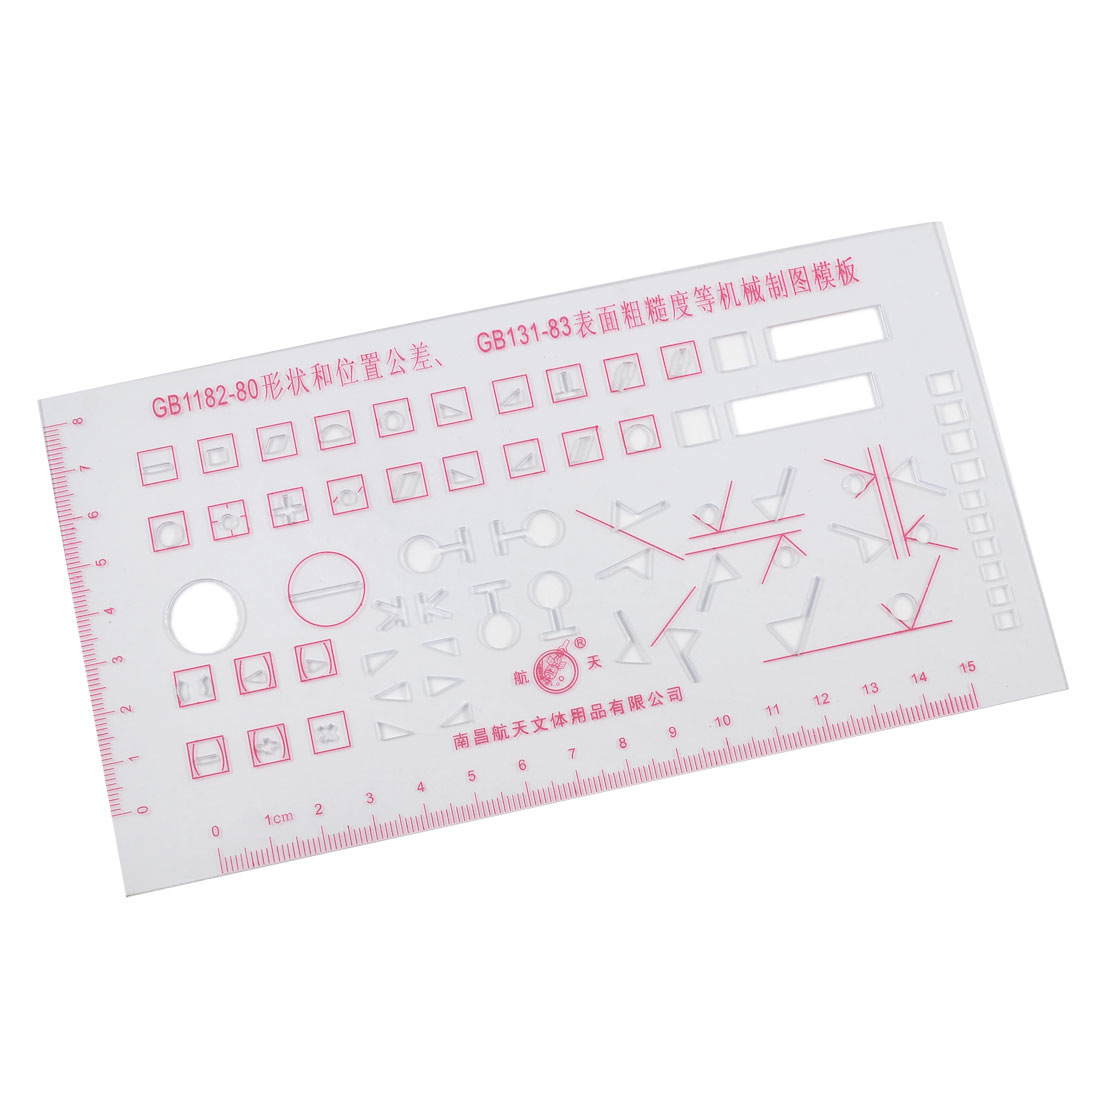 15cm Measurement Clear Plastic Mechanical Drawing Template Ruler